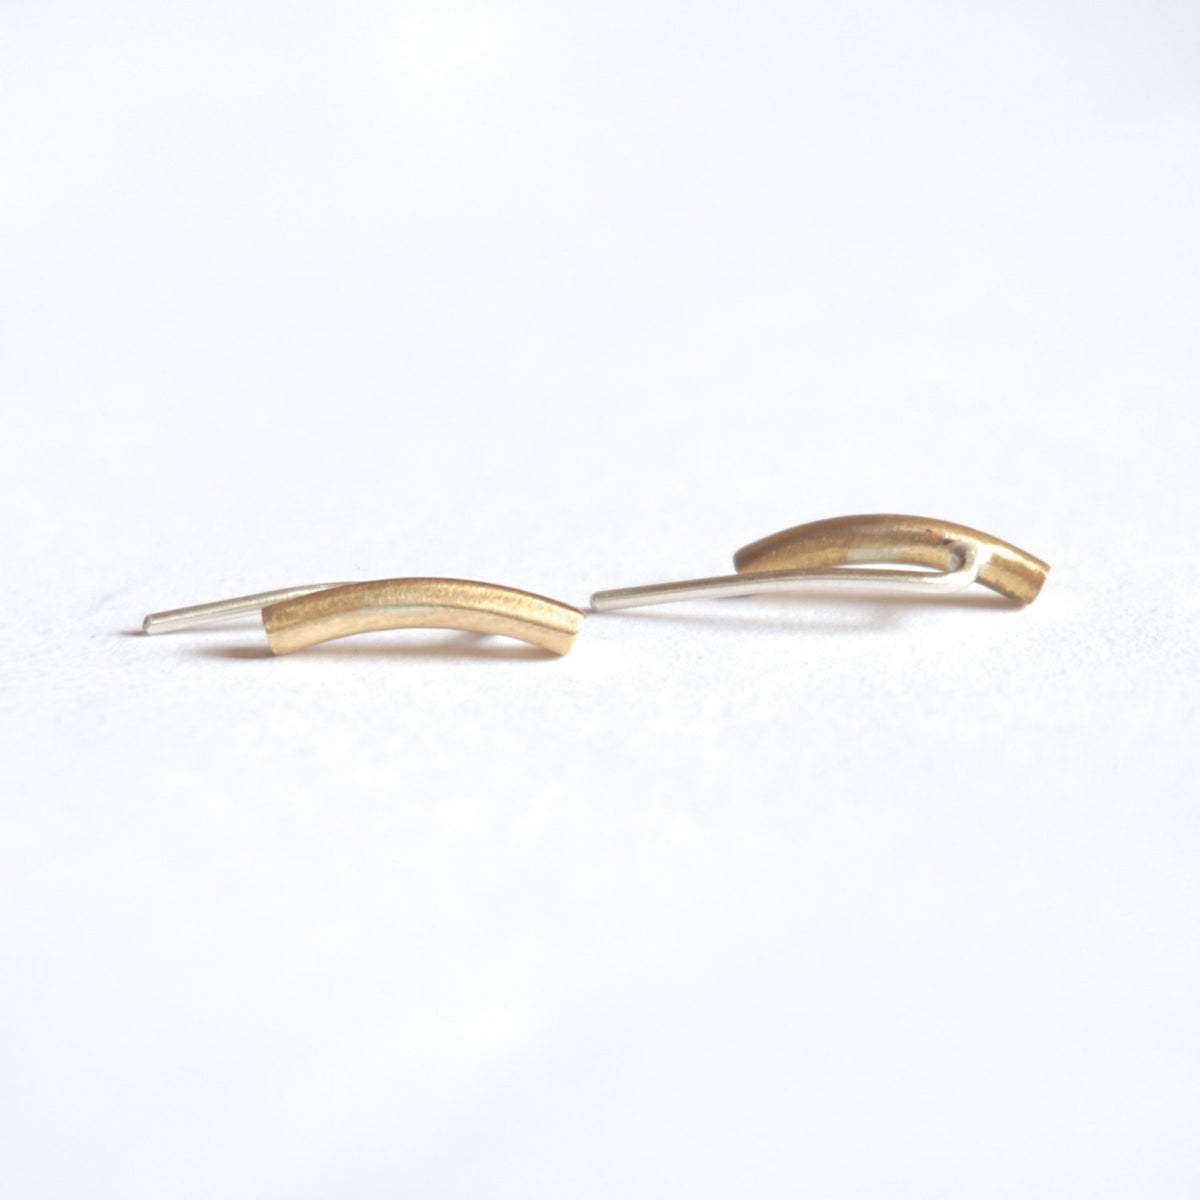 Understated Yet Modern Hand-Made Small Ear Climber Earrings - 0176 - Virginia Wynne Designs